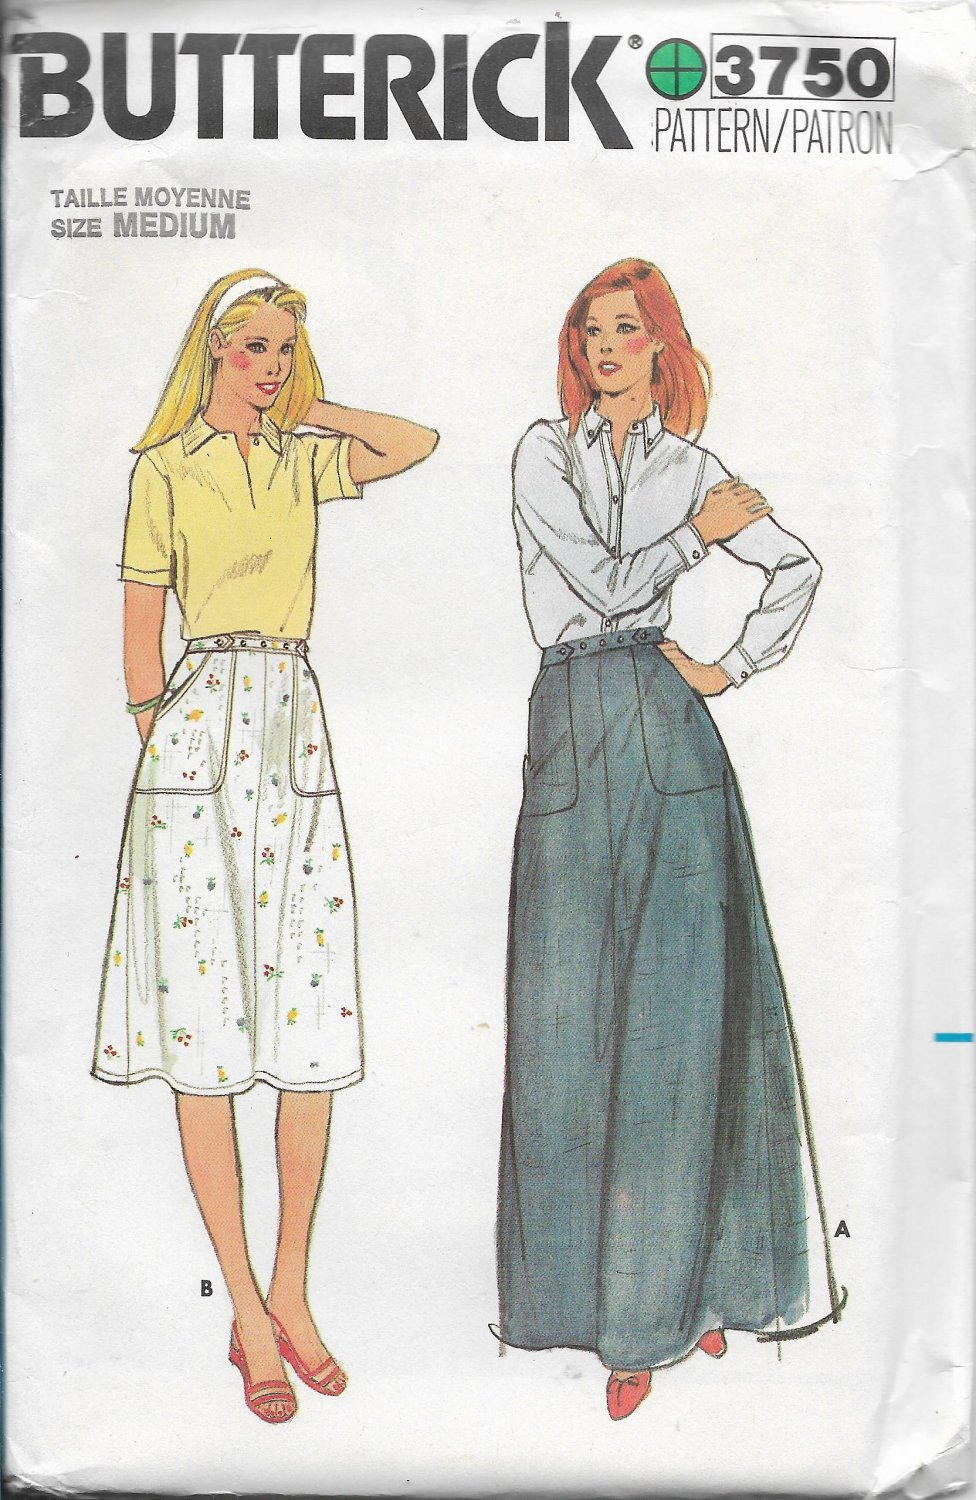 Vintage Butterick 3750 Misses Skirts Full Length and Below the Knee, Front and Side Pockets